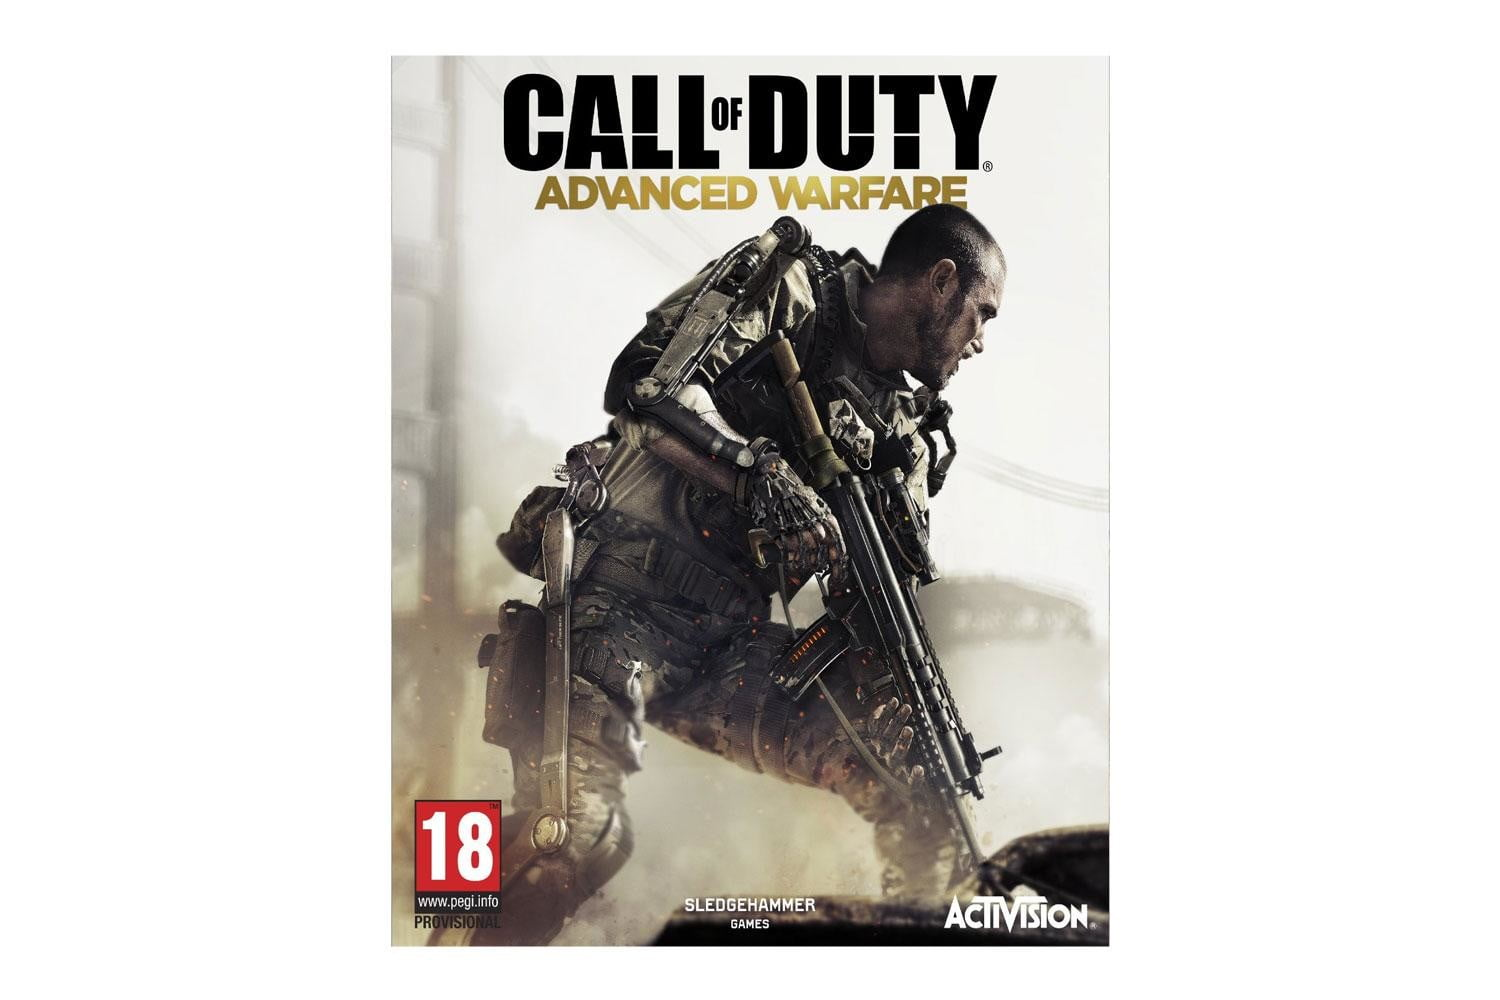 Call-of-Duty-Advanced-Warface-cover-art